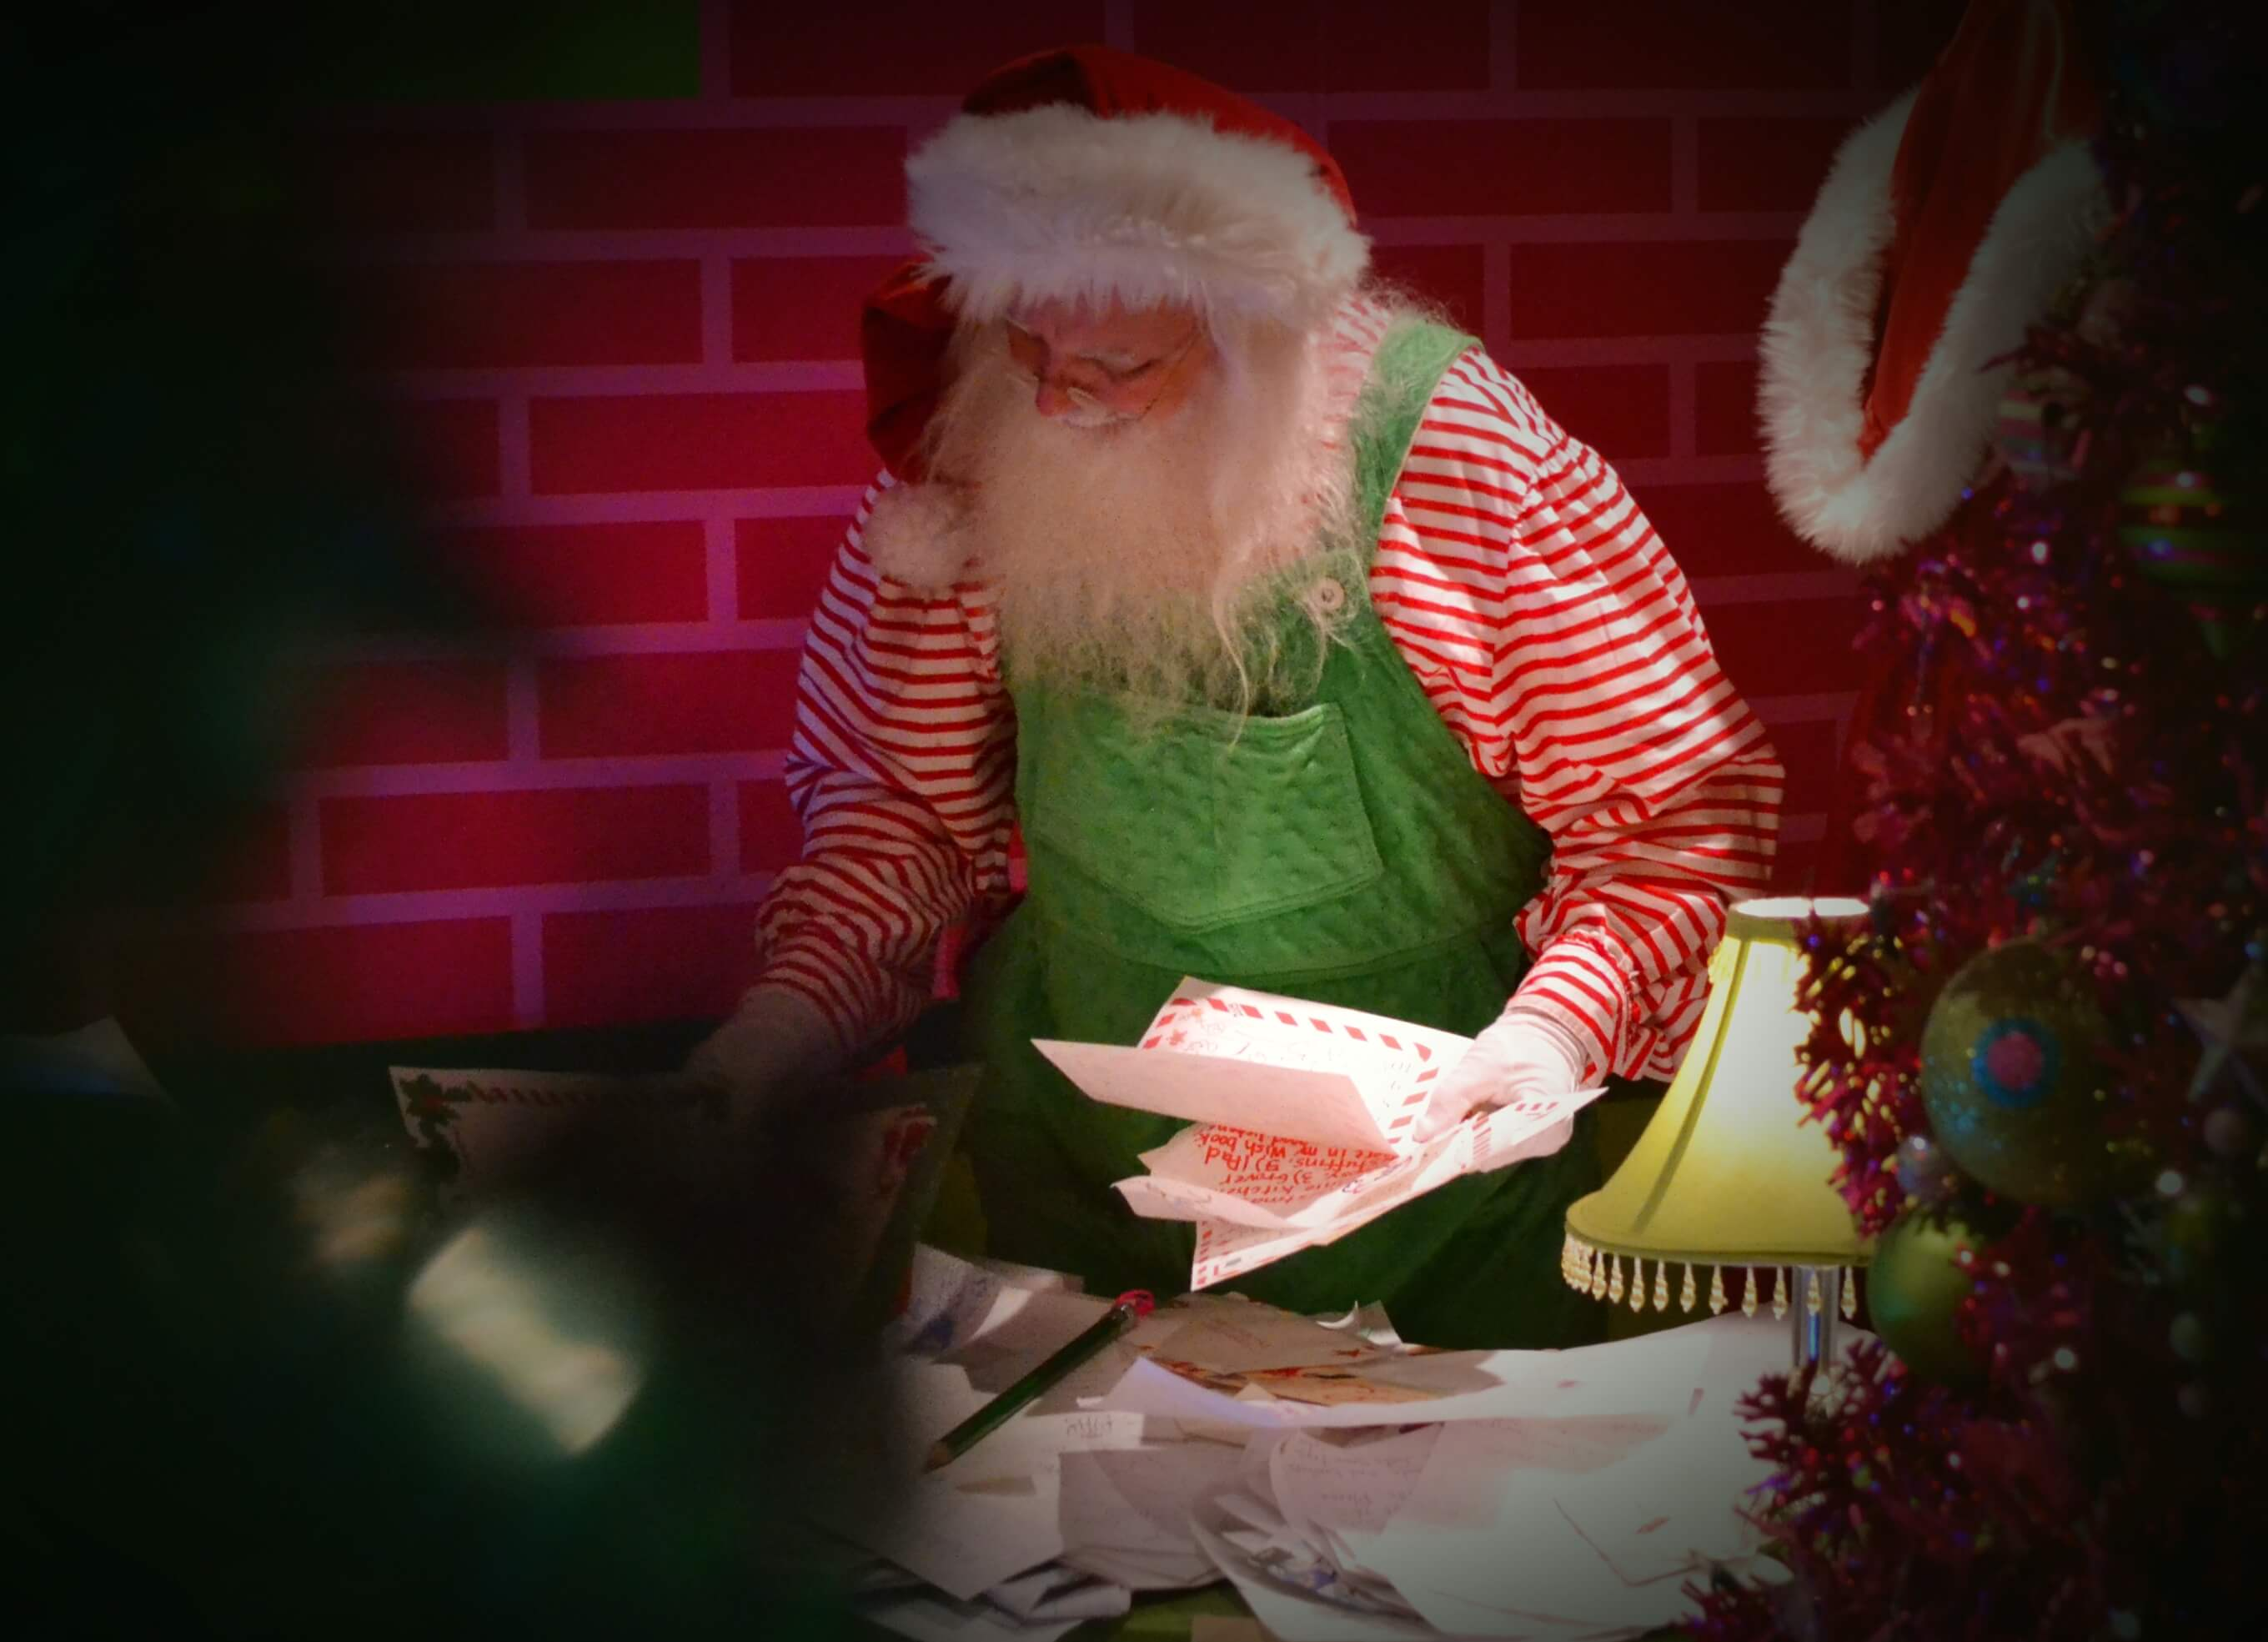 A Christmas elf opens magical doors at Mr. Kringle's Inventionasium Experience in Cleveland, Ohio's Tower City mall